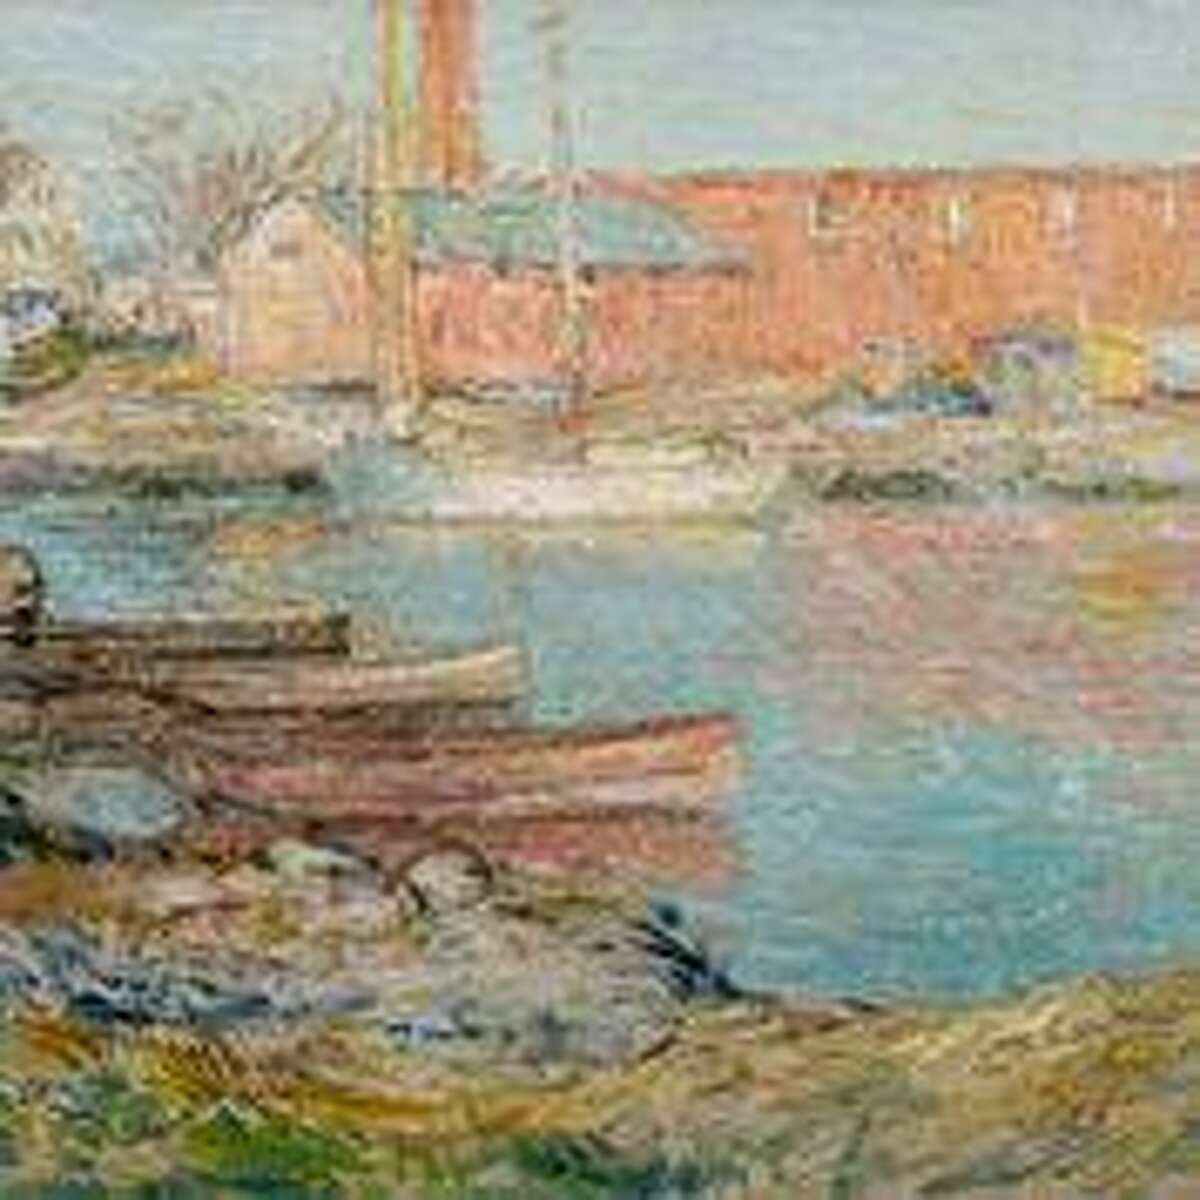 Childe Hassam's 'The Red Mill, Cos Cob' is an 1896 oil on canvas that is a centerpiece of the new exhibit that opens to members this week and to the general public by reservation on Saturday.